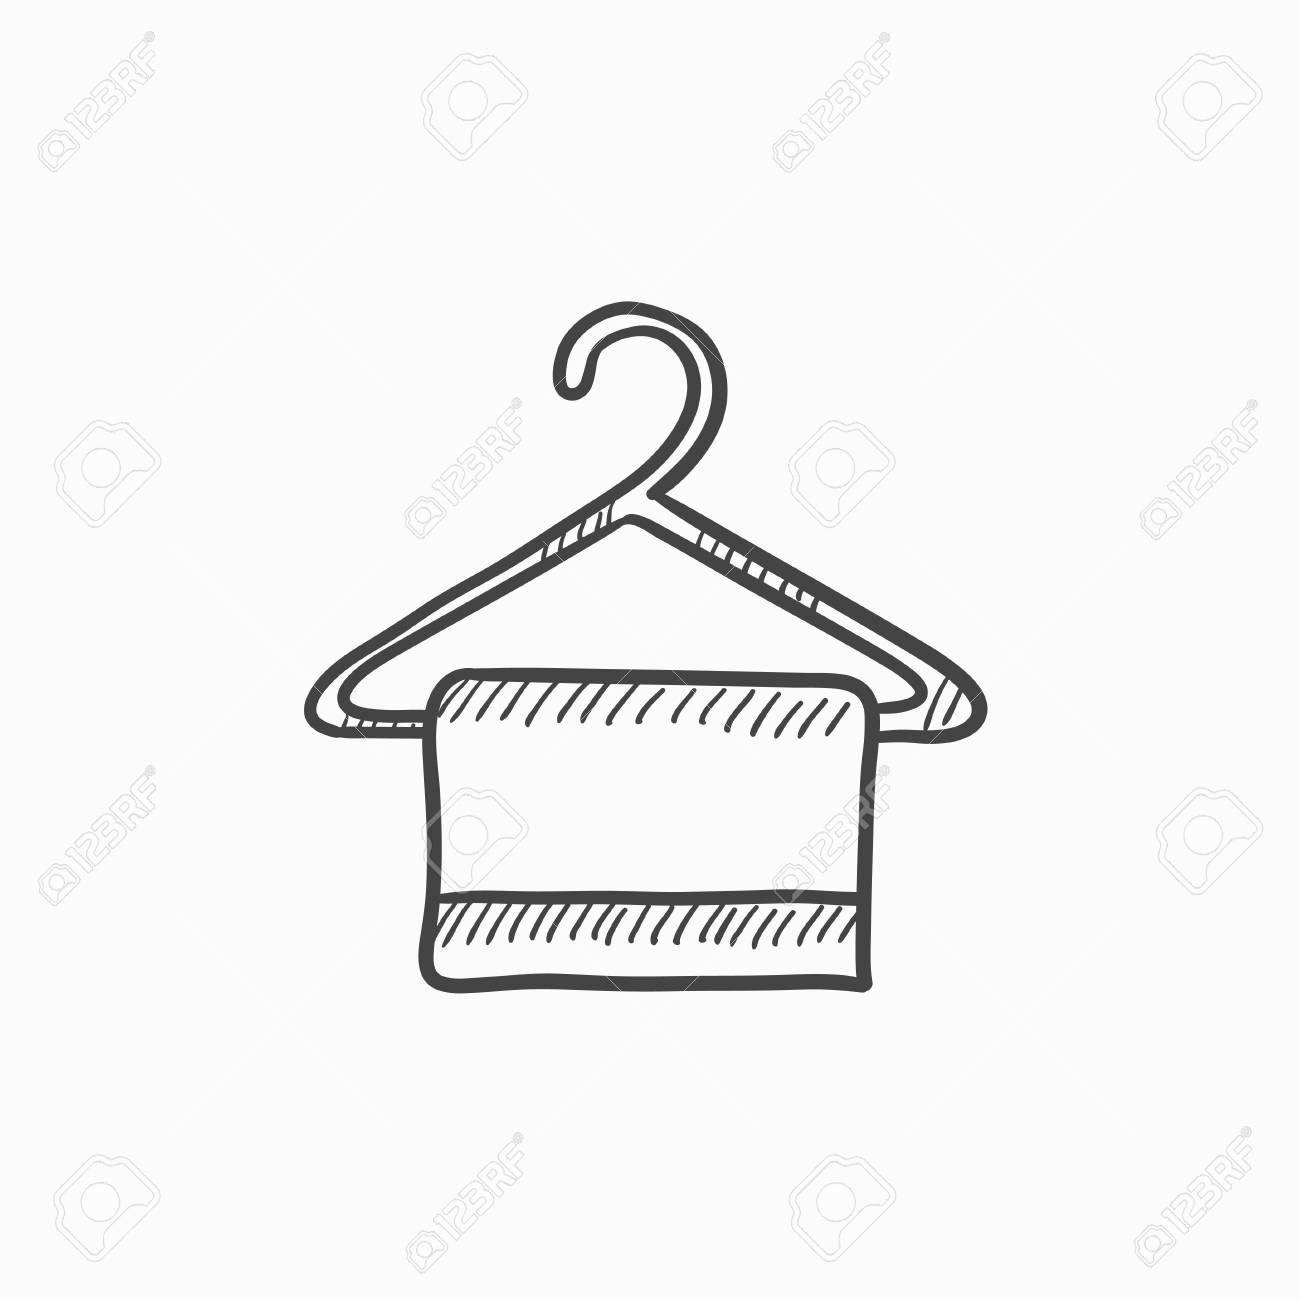 1300x1300 Towel On Hanger Vector Sketch Icon Isolated On Background. Hand